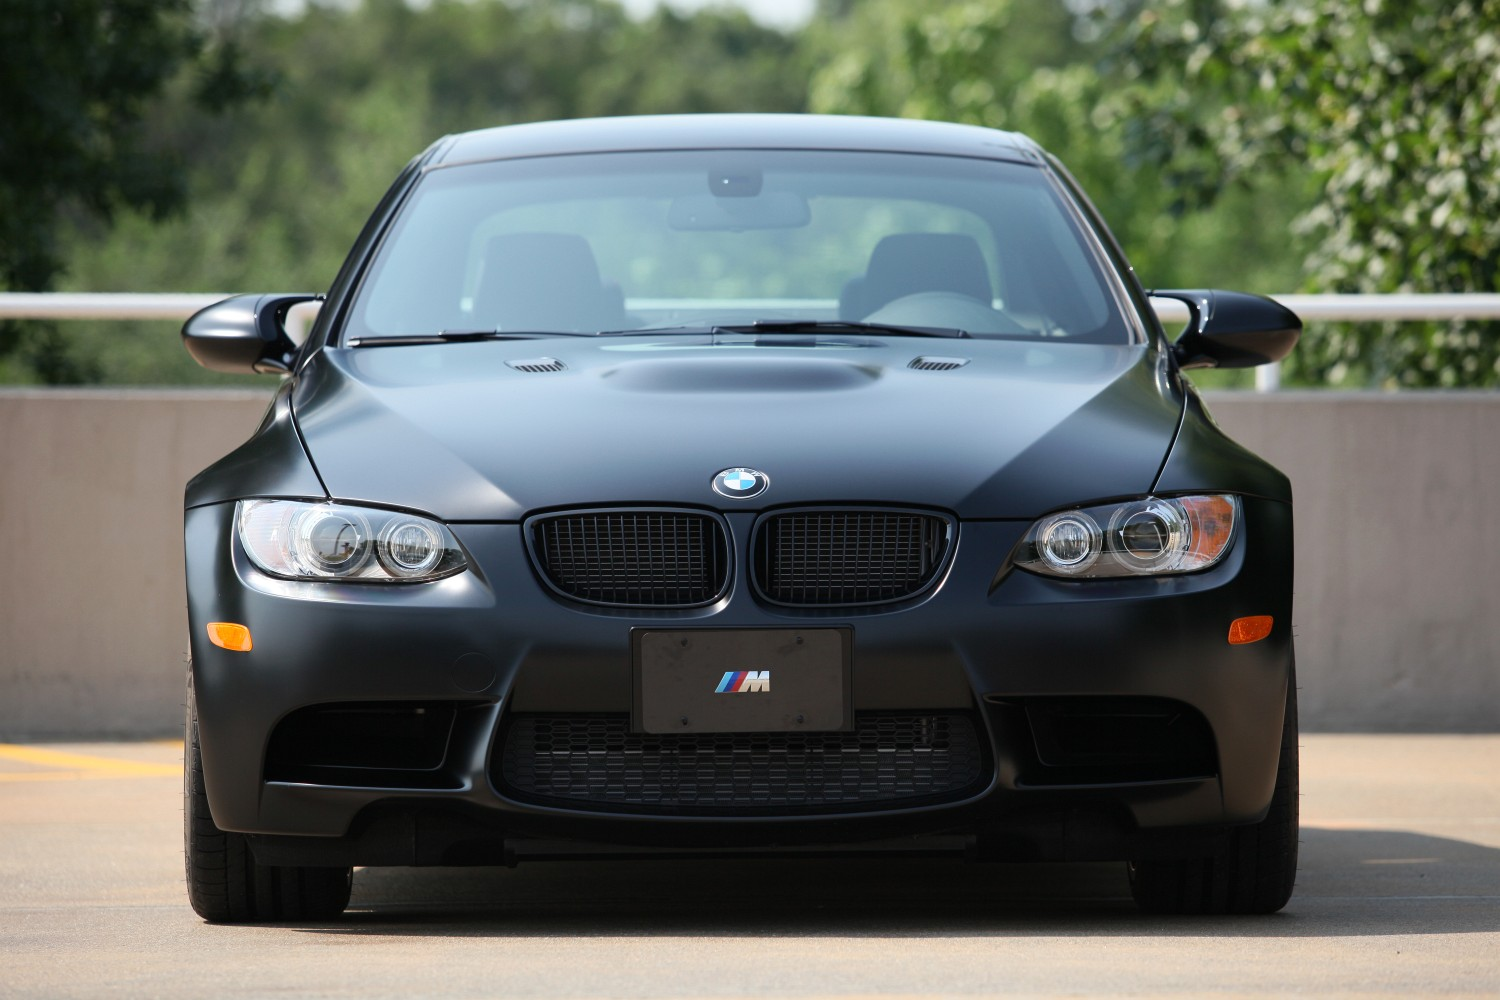 Black Edition M3 Coupe.